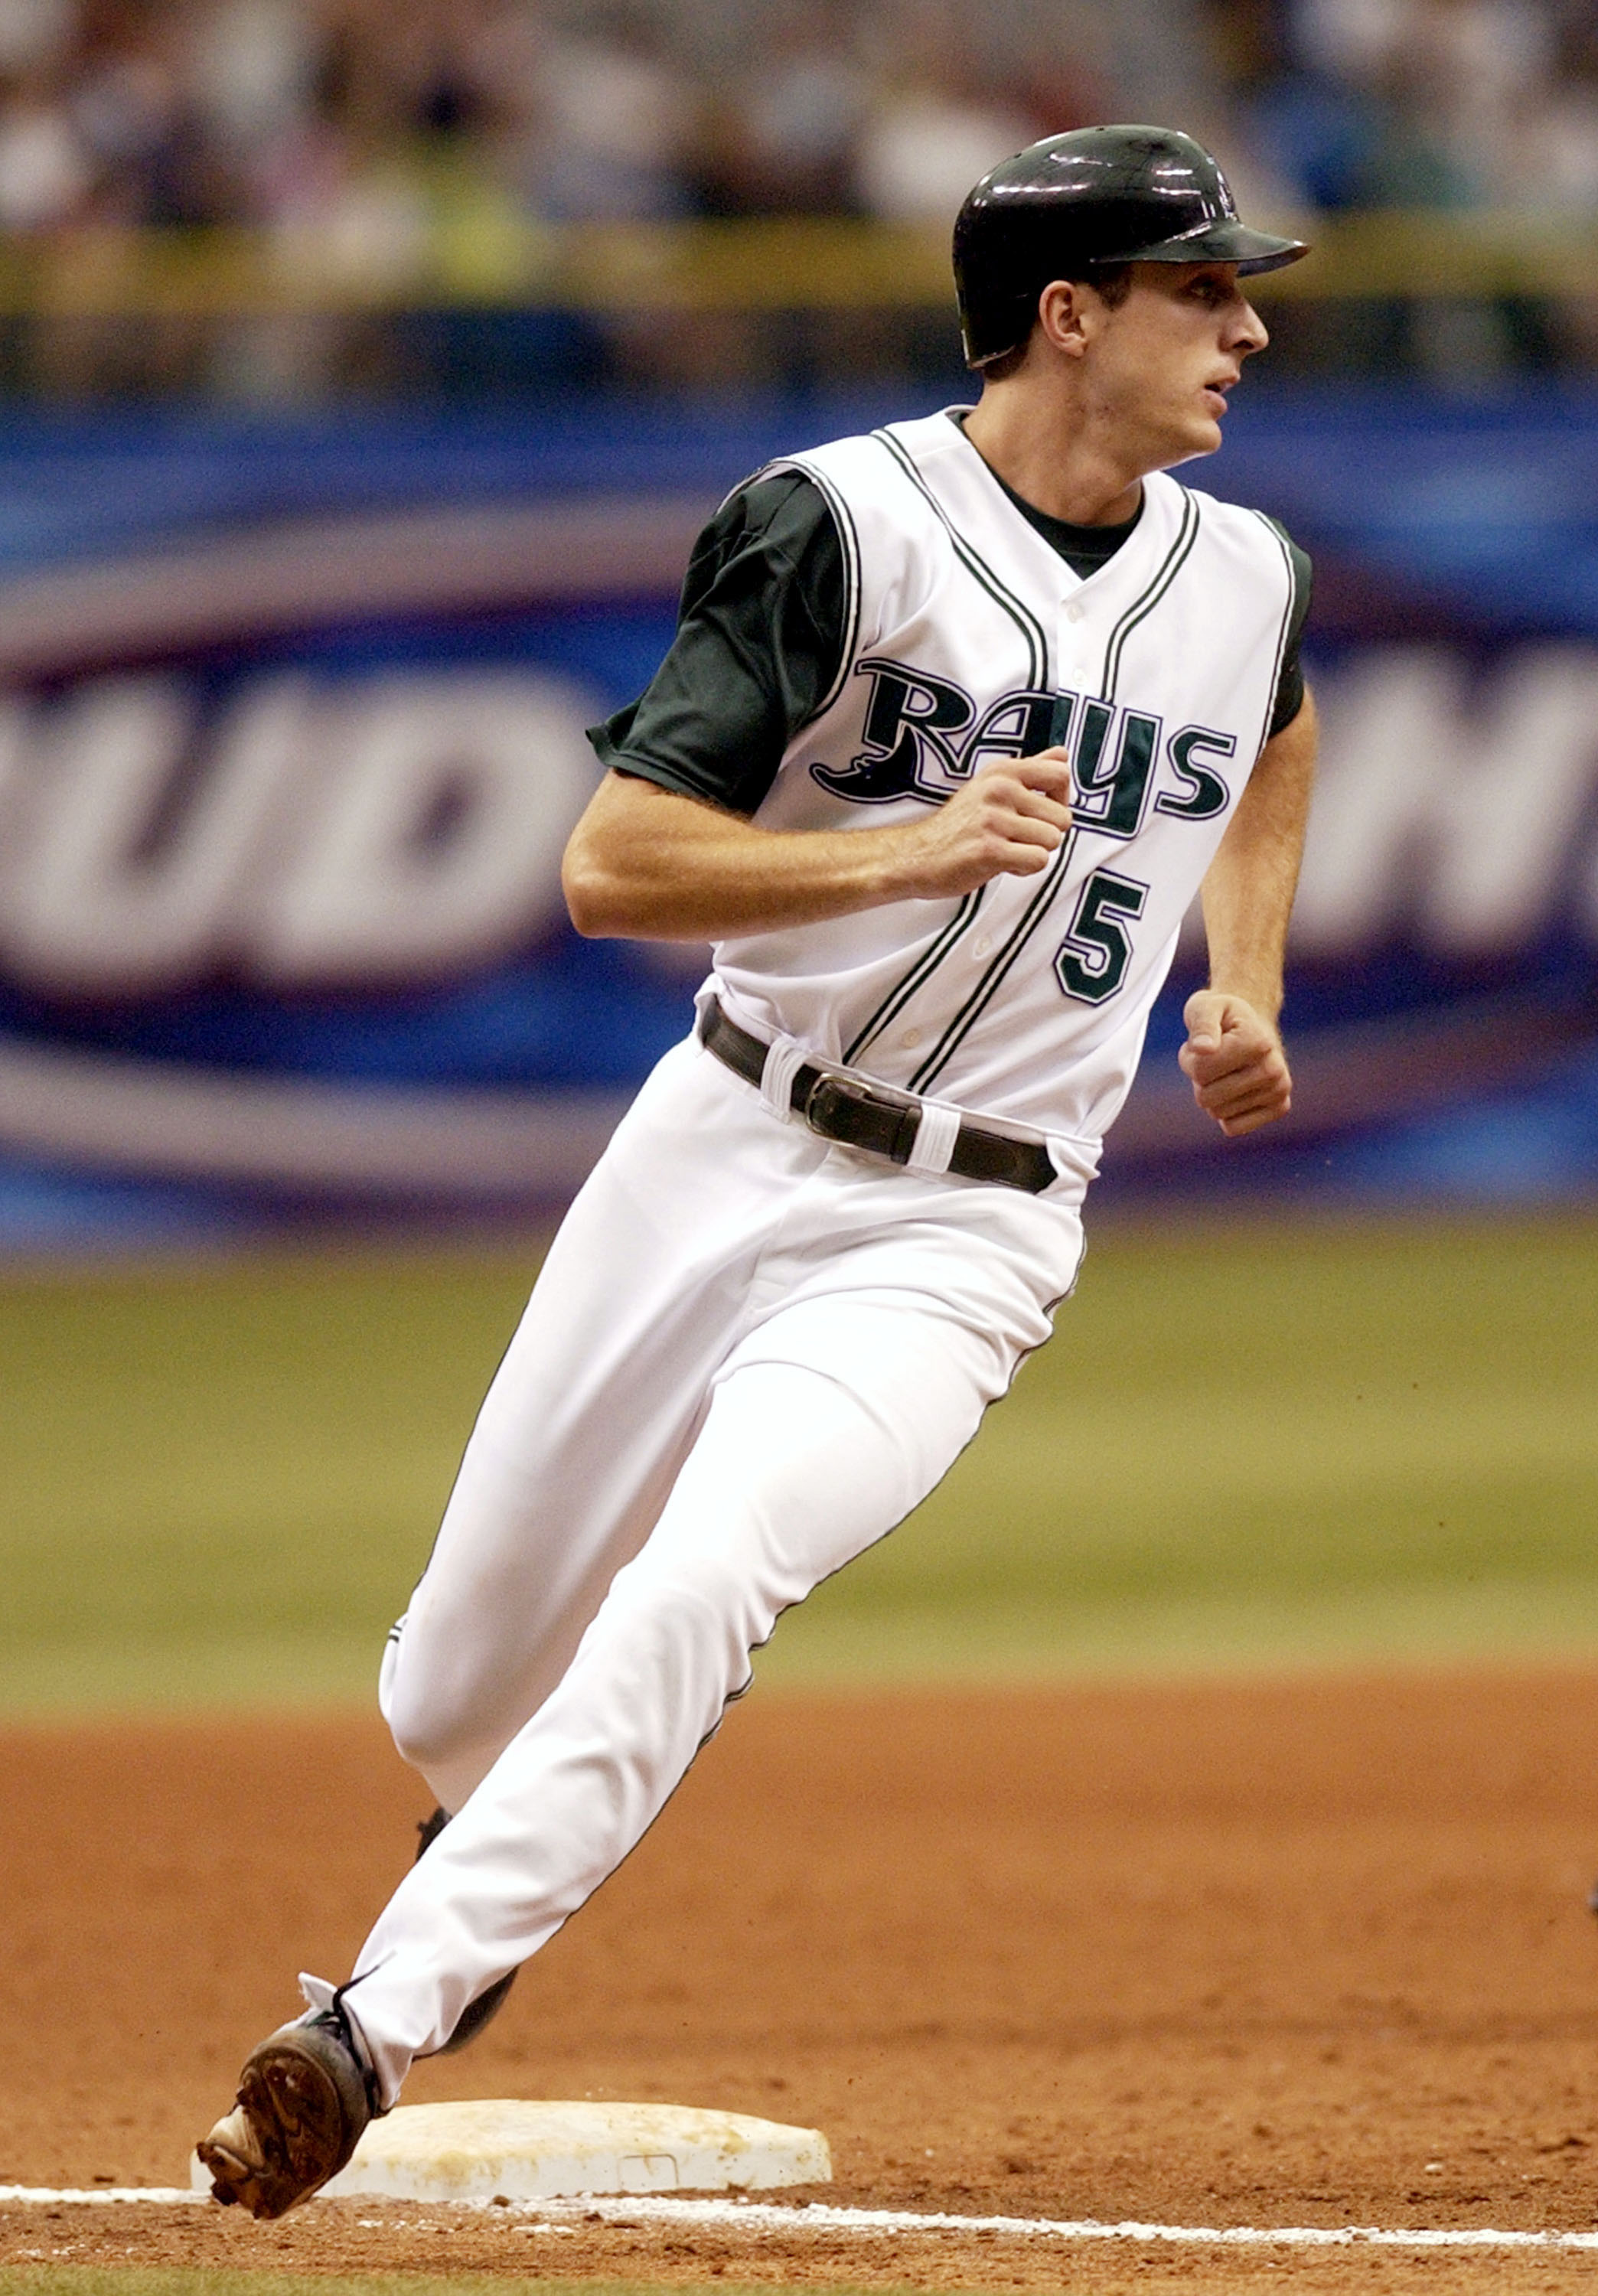 Cleveland Indians vs. Tampa Bay Devil Rays - August 24, 2003